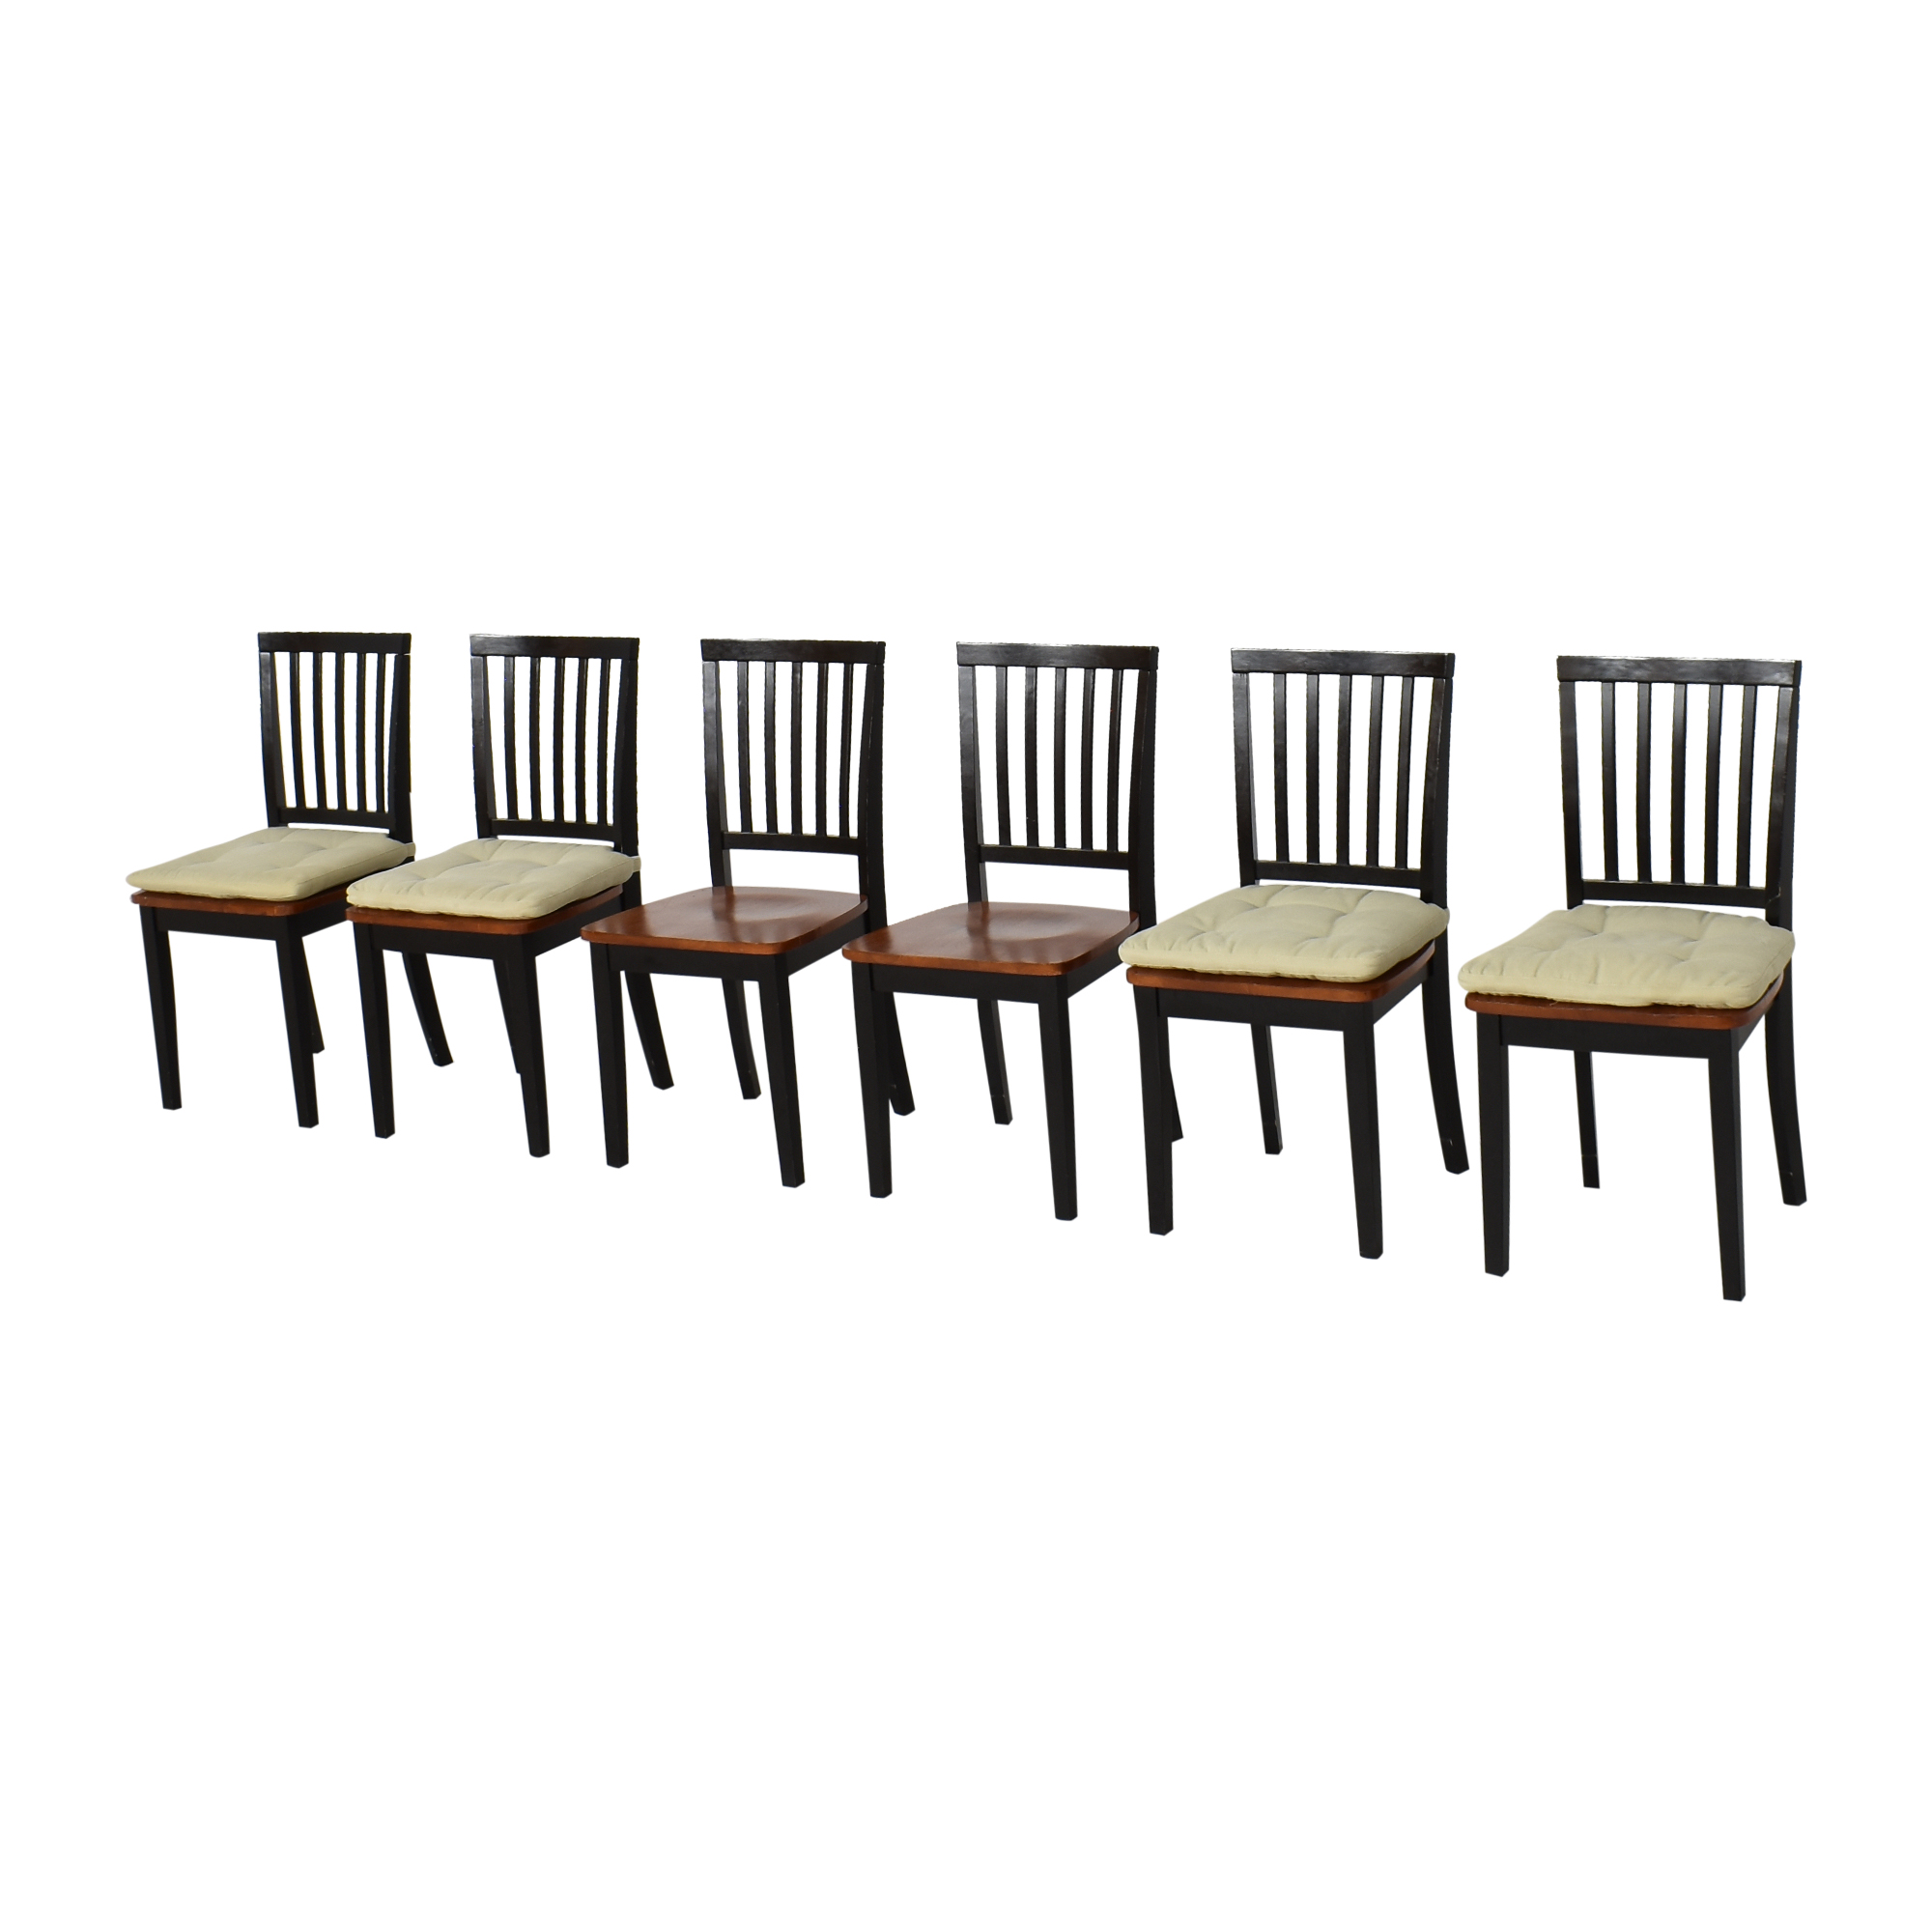 Crate & Barrel Village Bruno Dining Chairs / Chairs